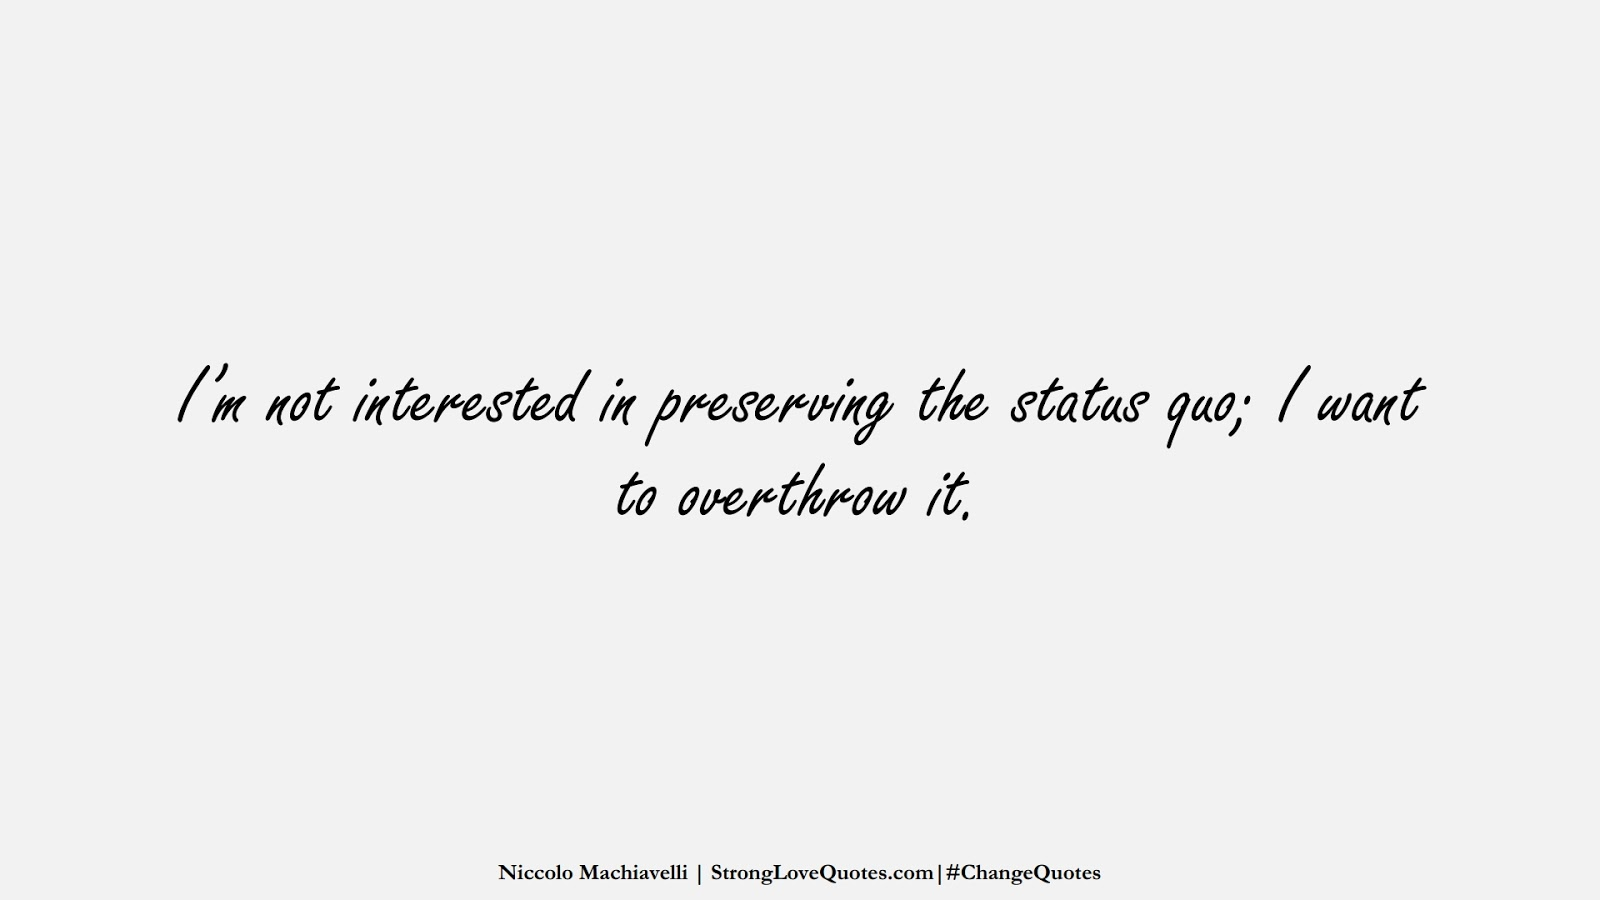 I'm not interested in preserving the status quo; I want to overthrow it. (Niccolo Machiavelli);  #ChangeQuotes